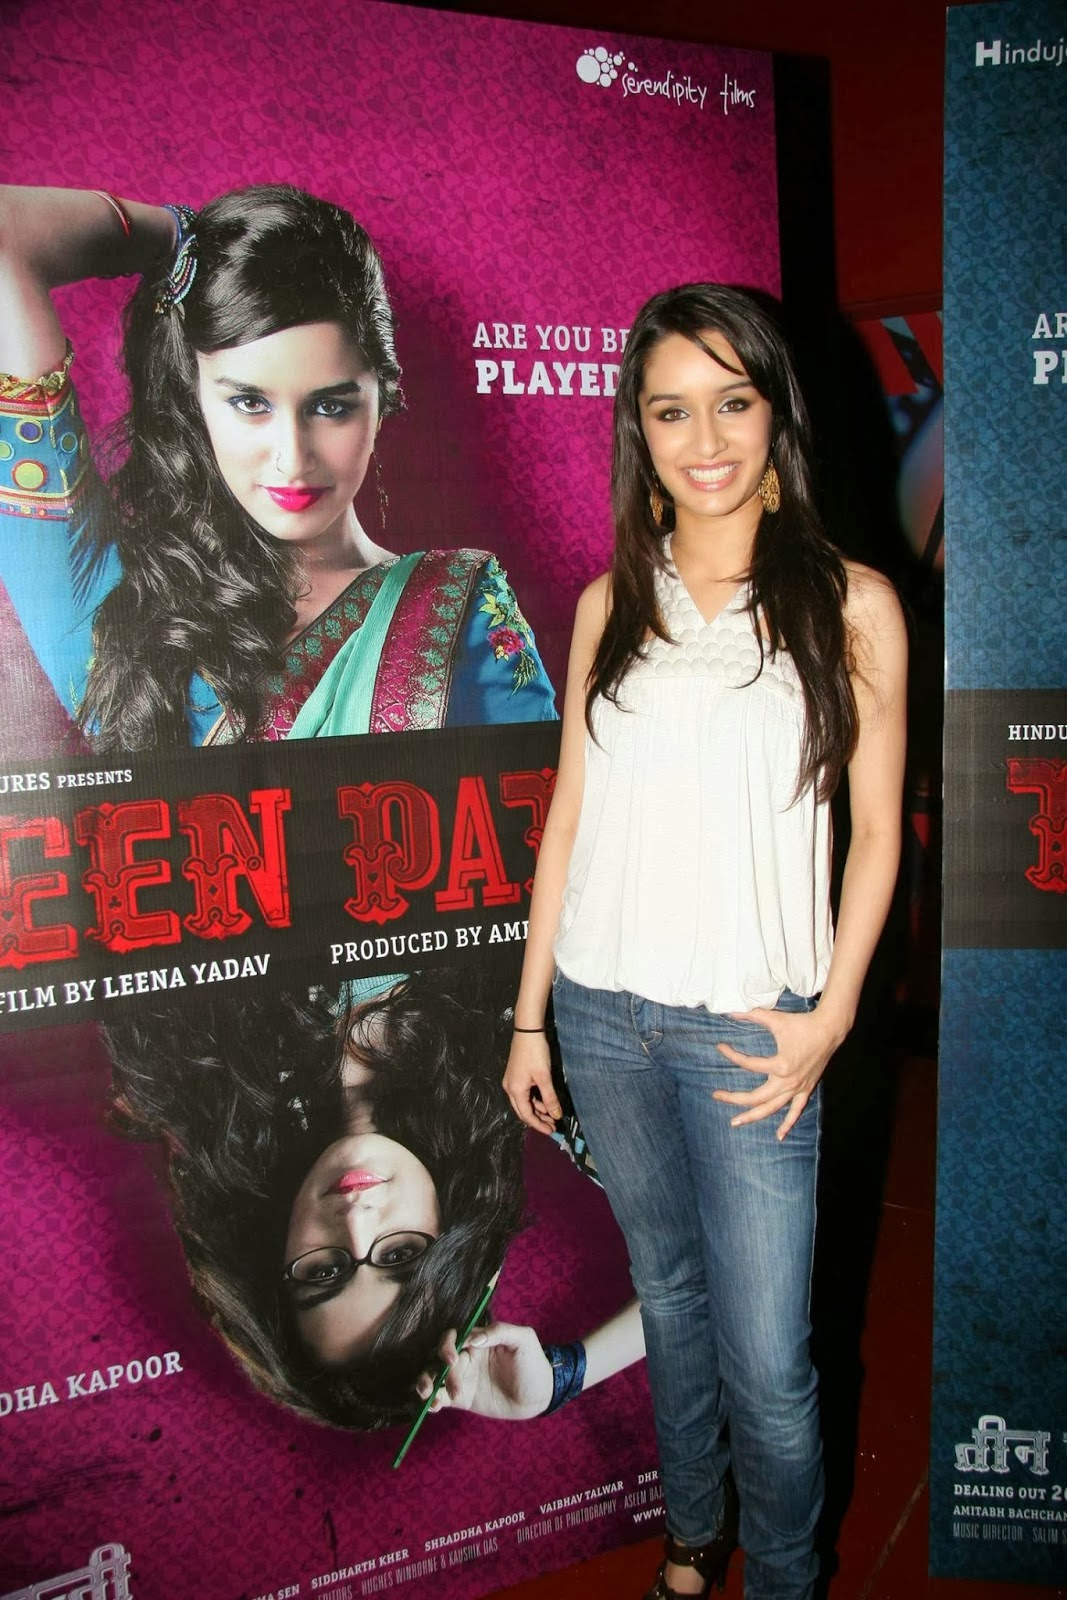 Shraddha+Kapoor+Latest+Hot+Spicy+Pictures003